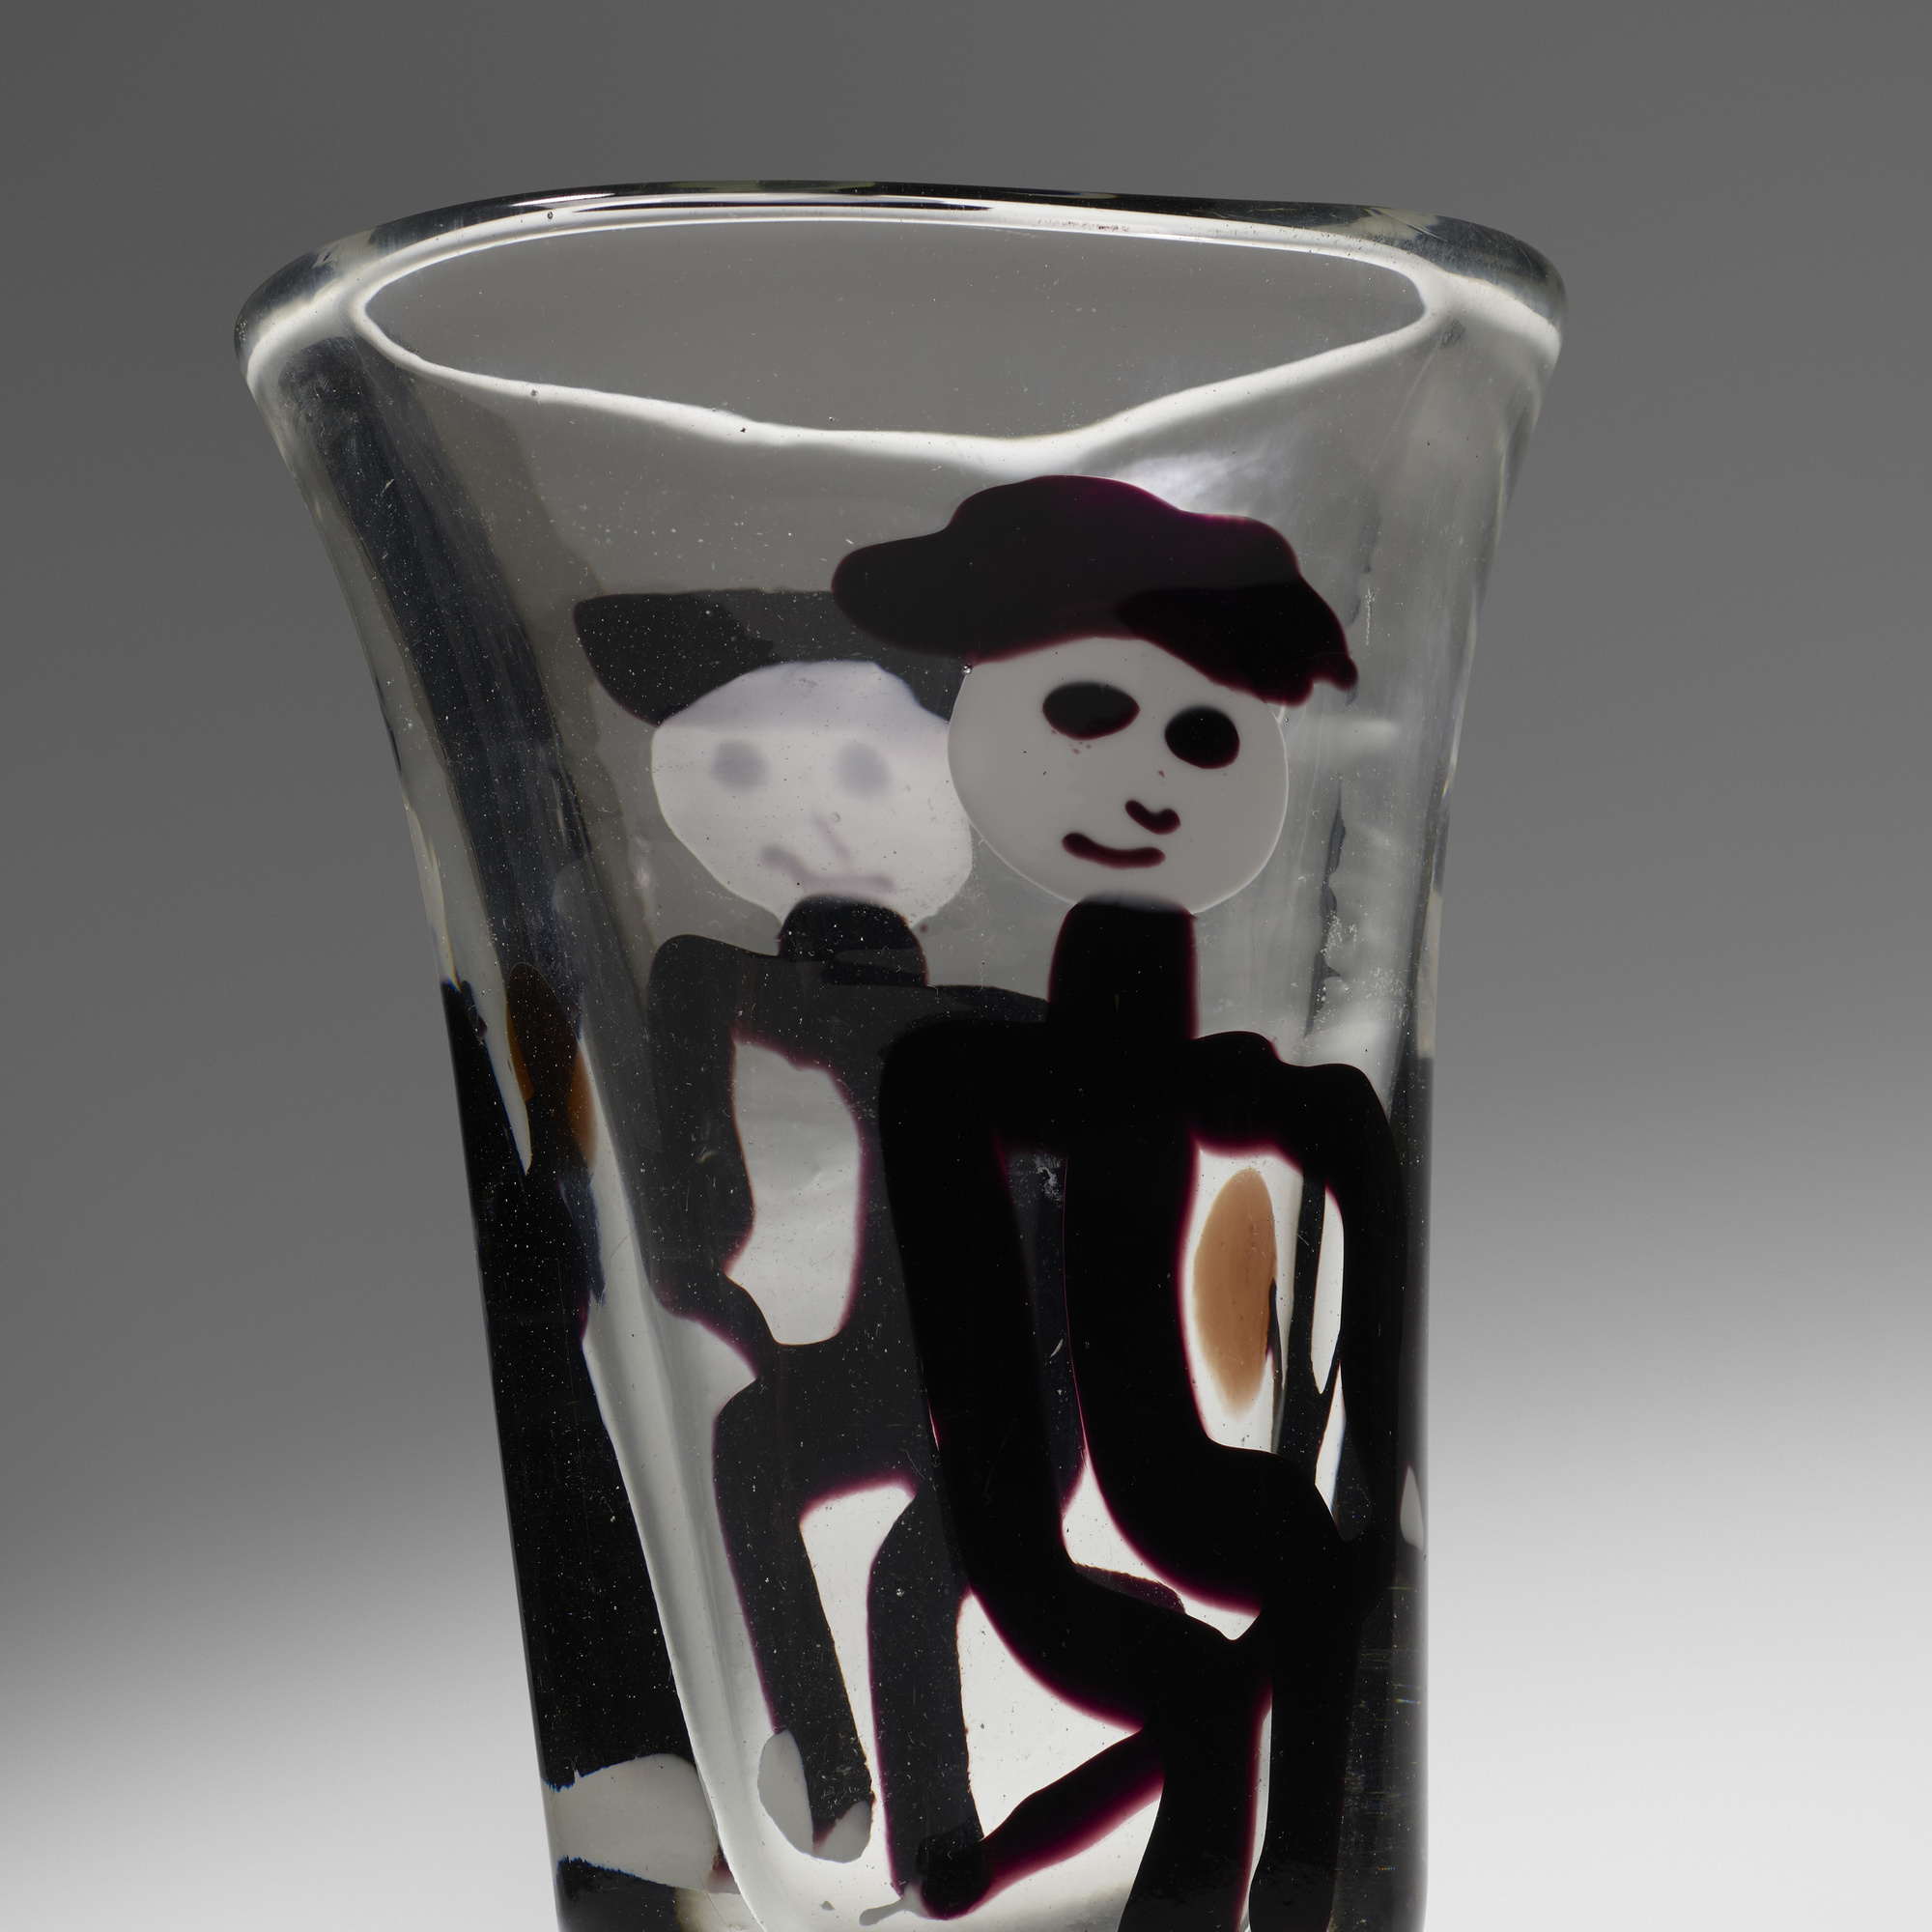 45: Fulvio Bianconi / Important con Macchie vase, model 4427 (3 of 4)